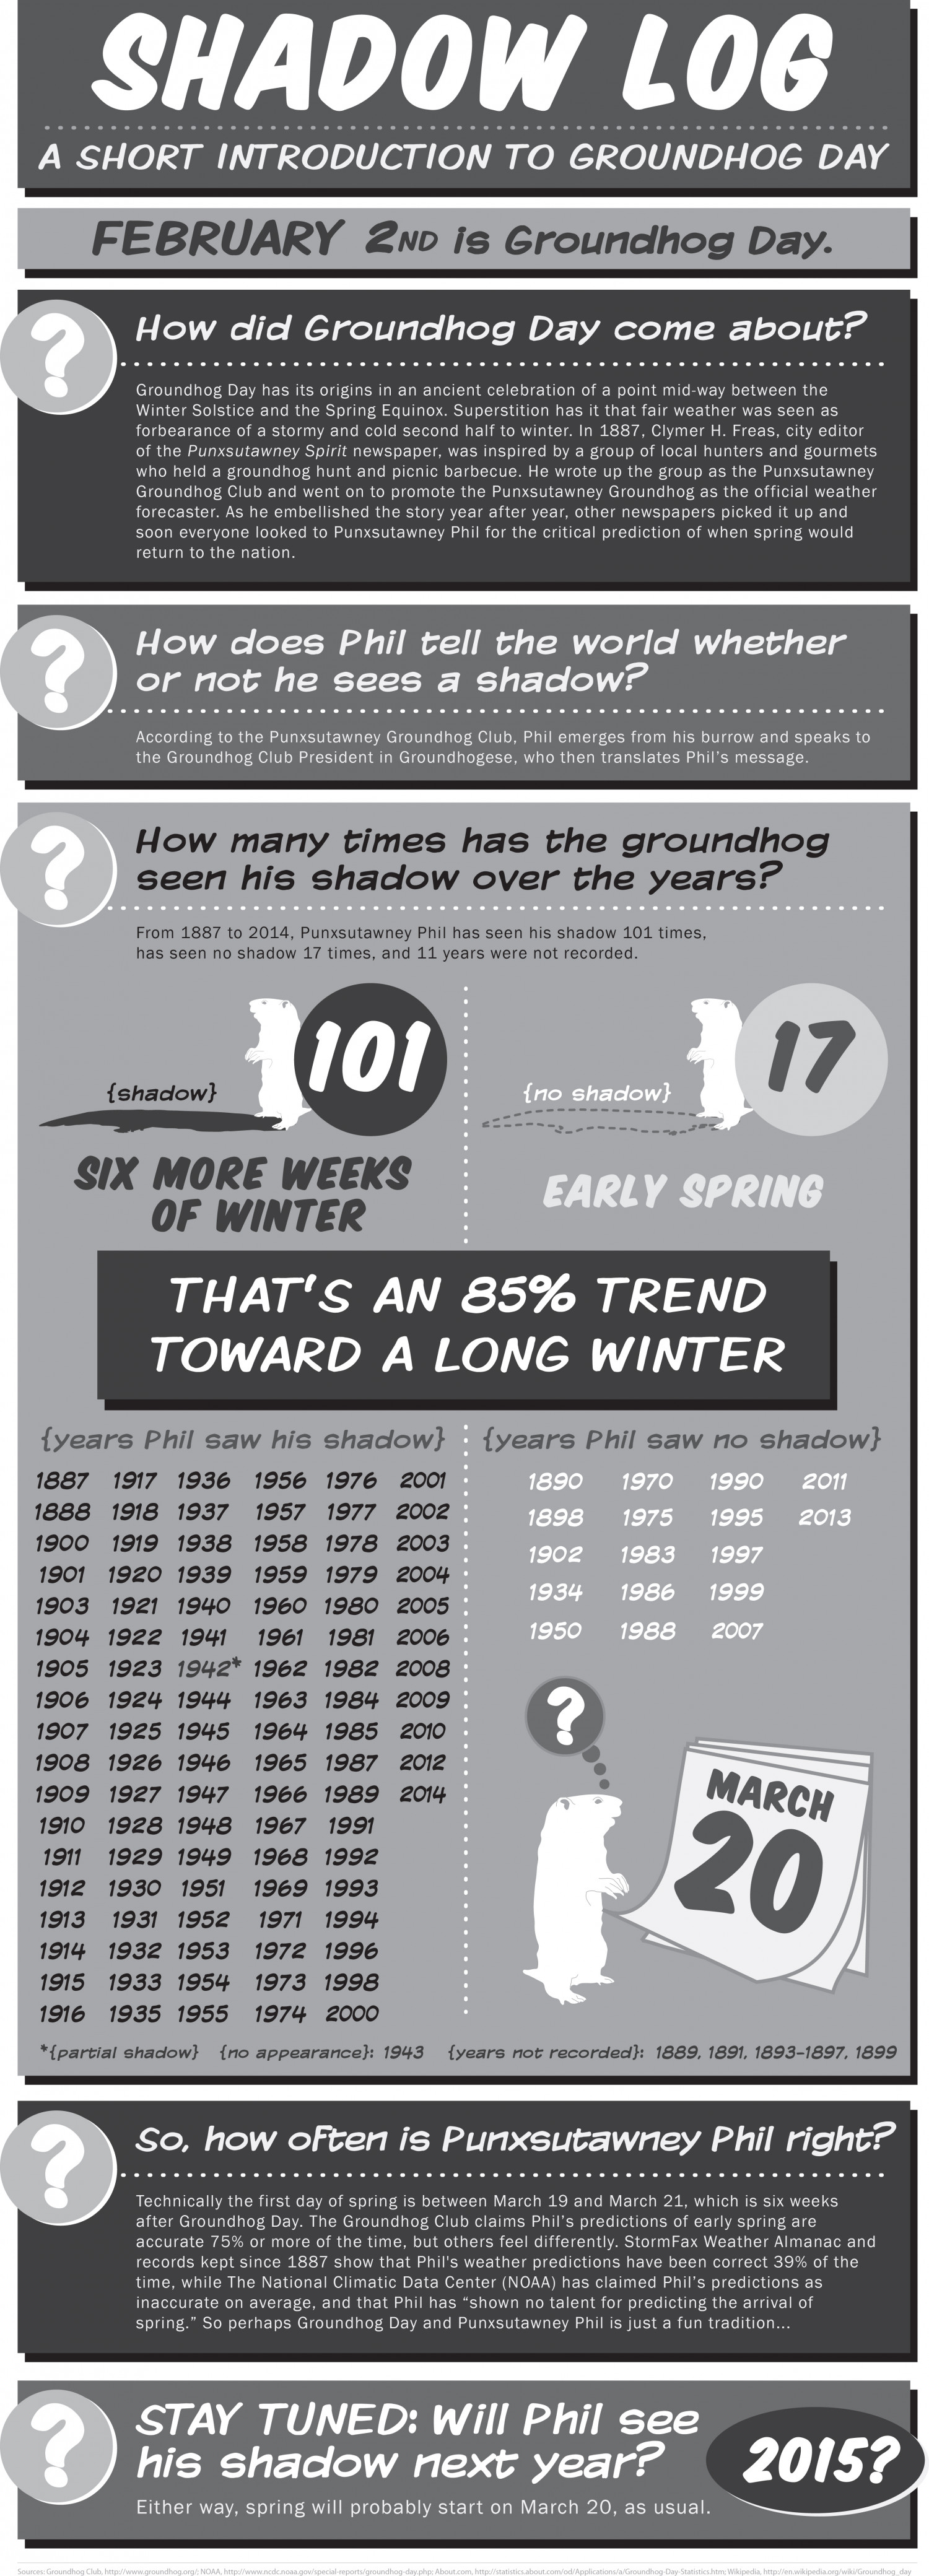 Shadow Log: A Short Introduction to Groundhog Day Infographic